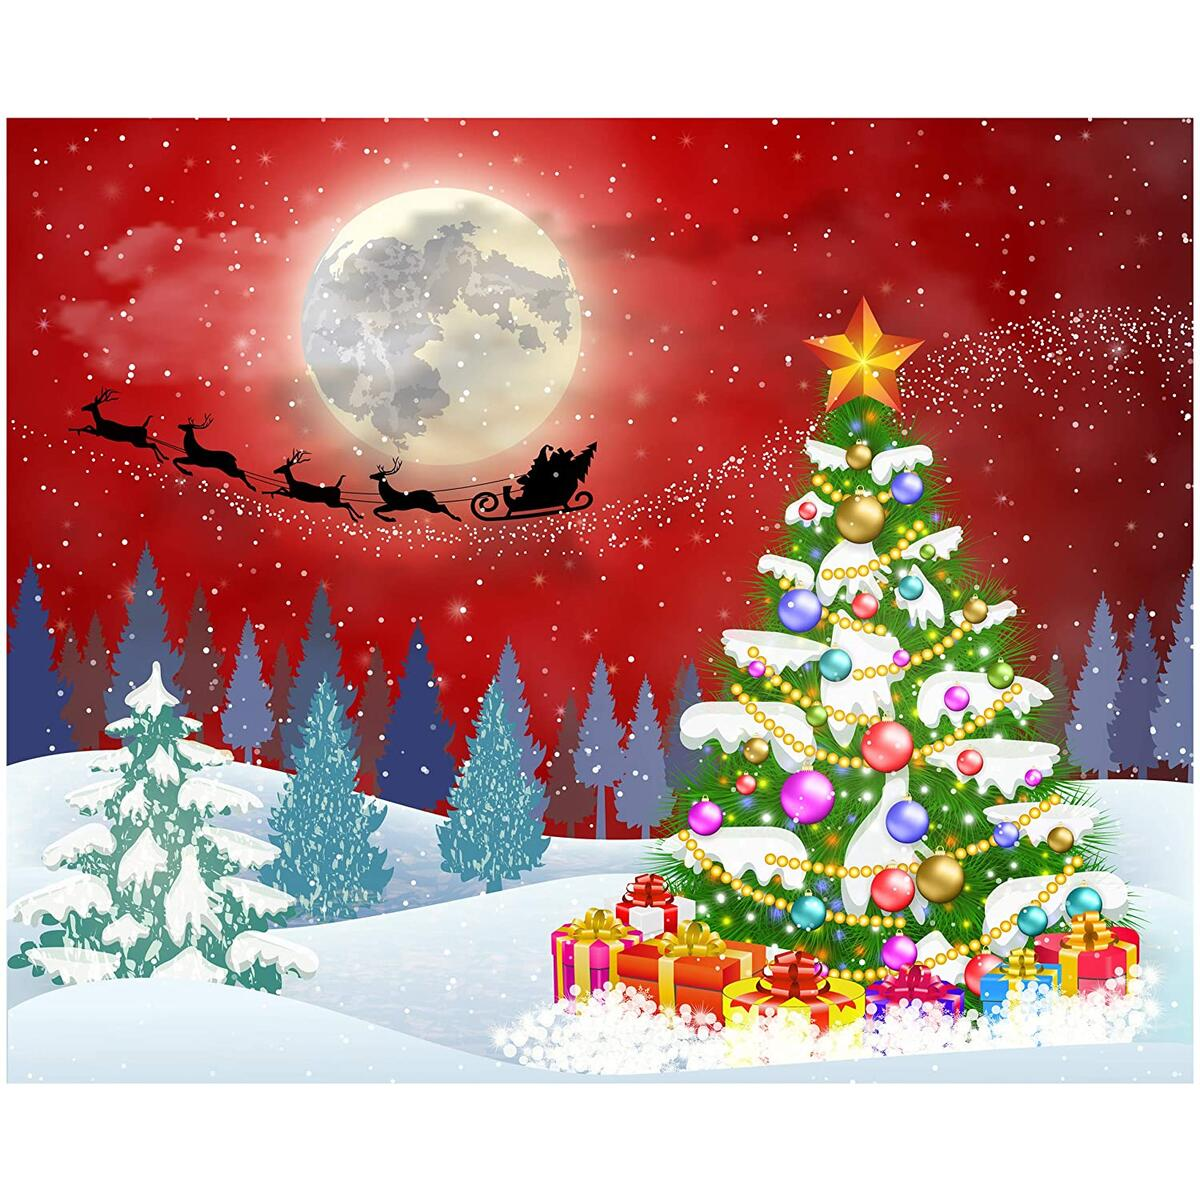 Diamond Painting for Adults Christmas Craft Kit Paint by Number with Gems